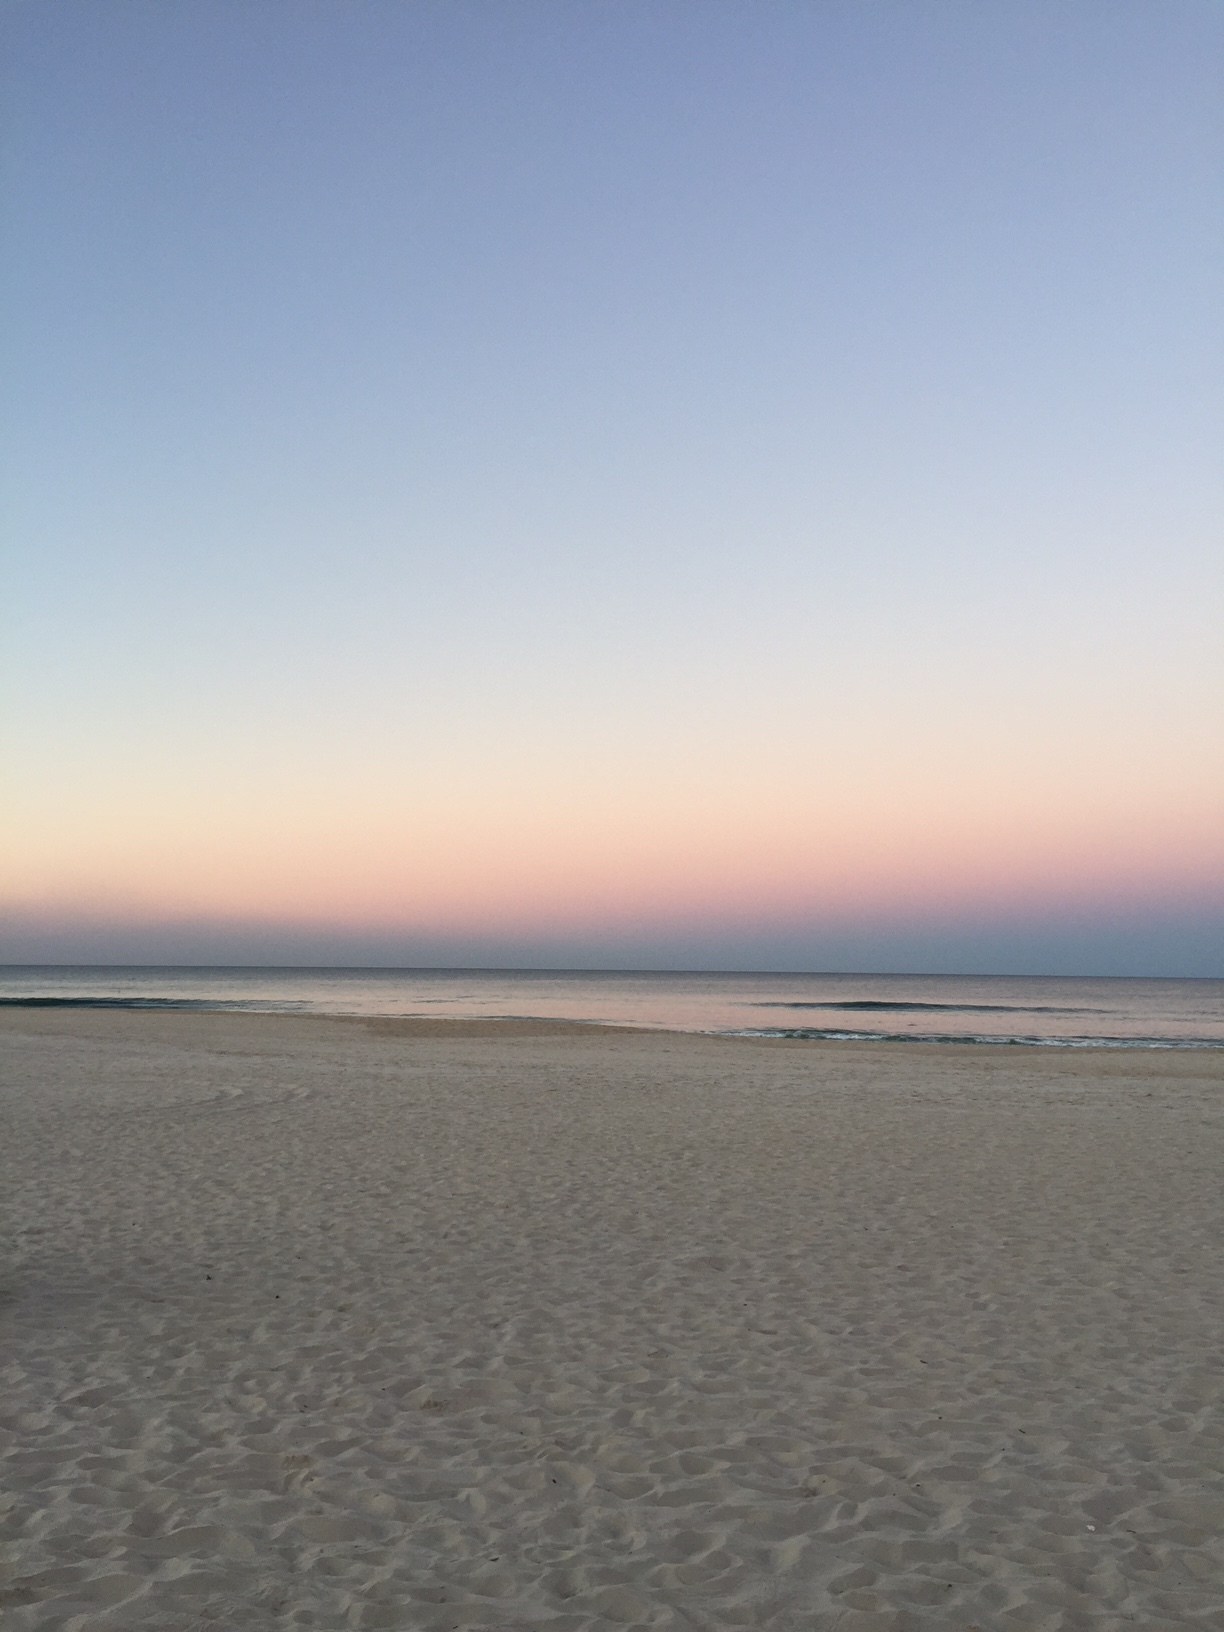 And ... touchdown. A Gold Coast sunset